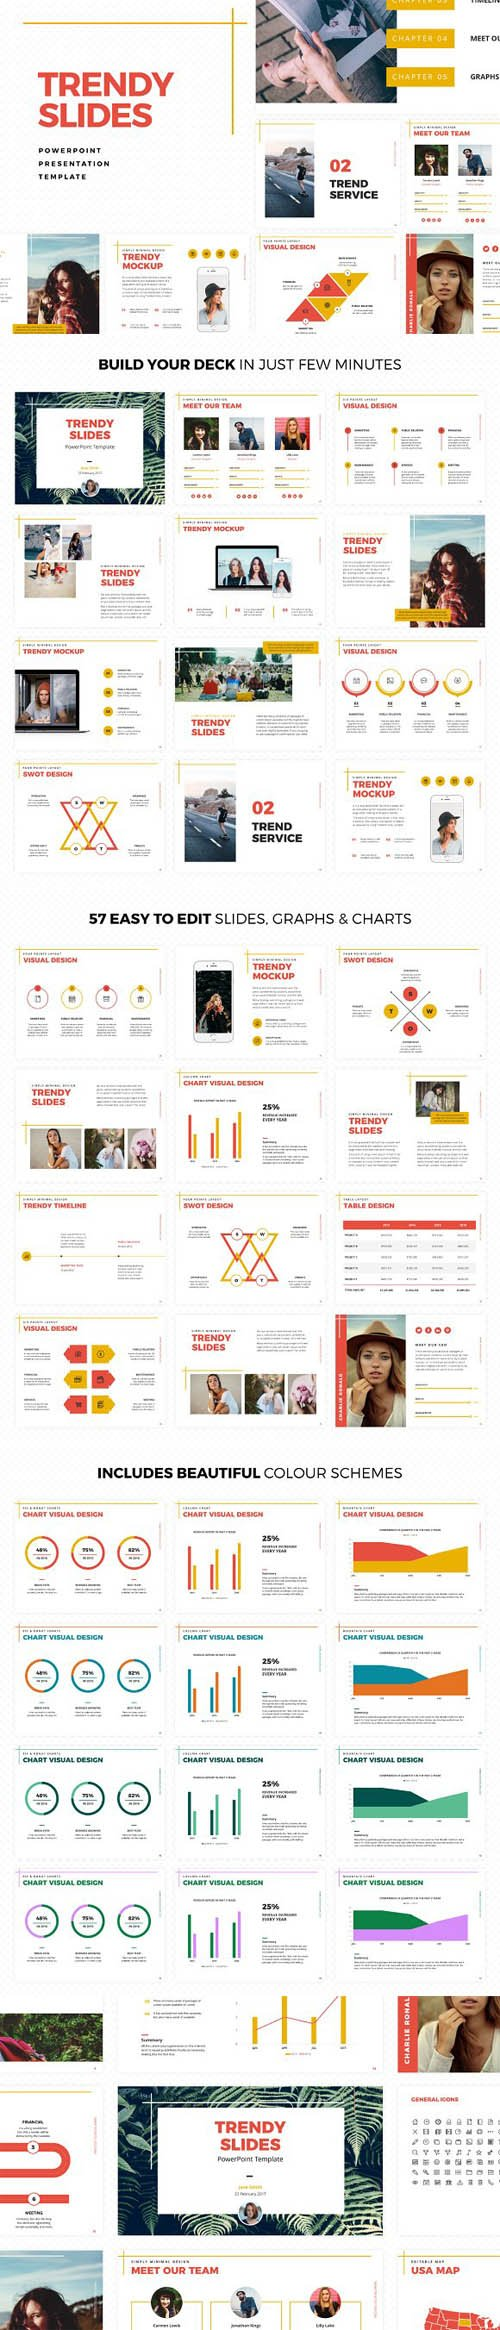 Trendy Slides PowerPoint Template 1328744